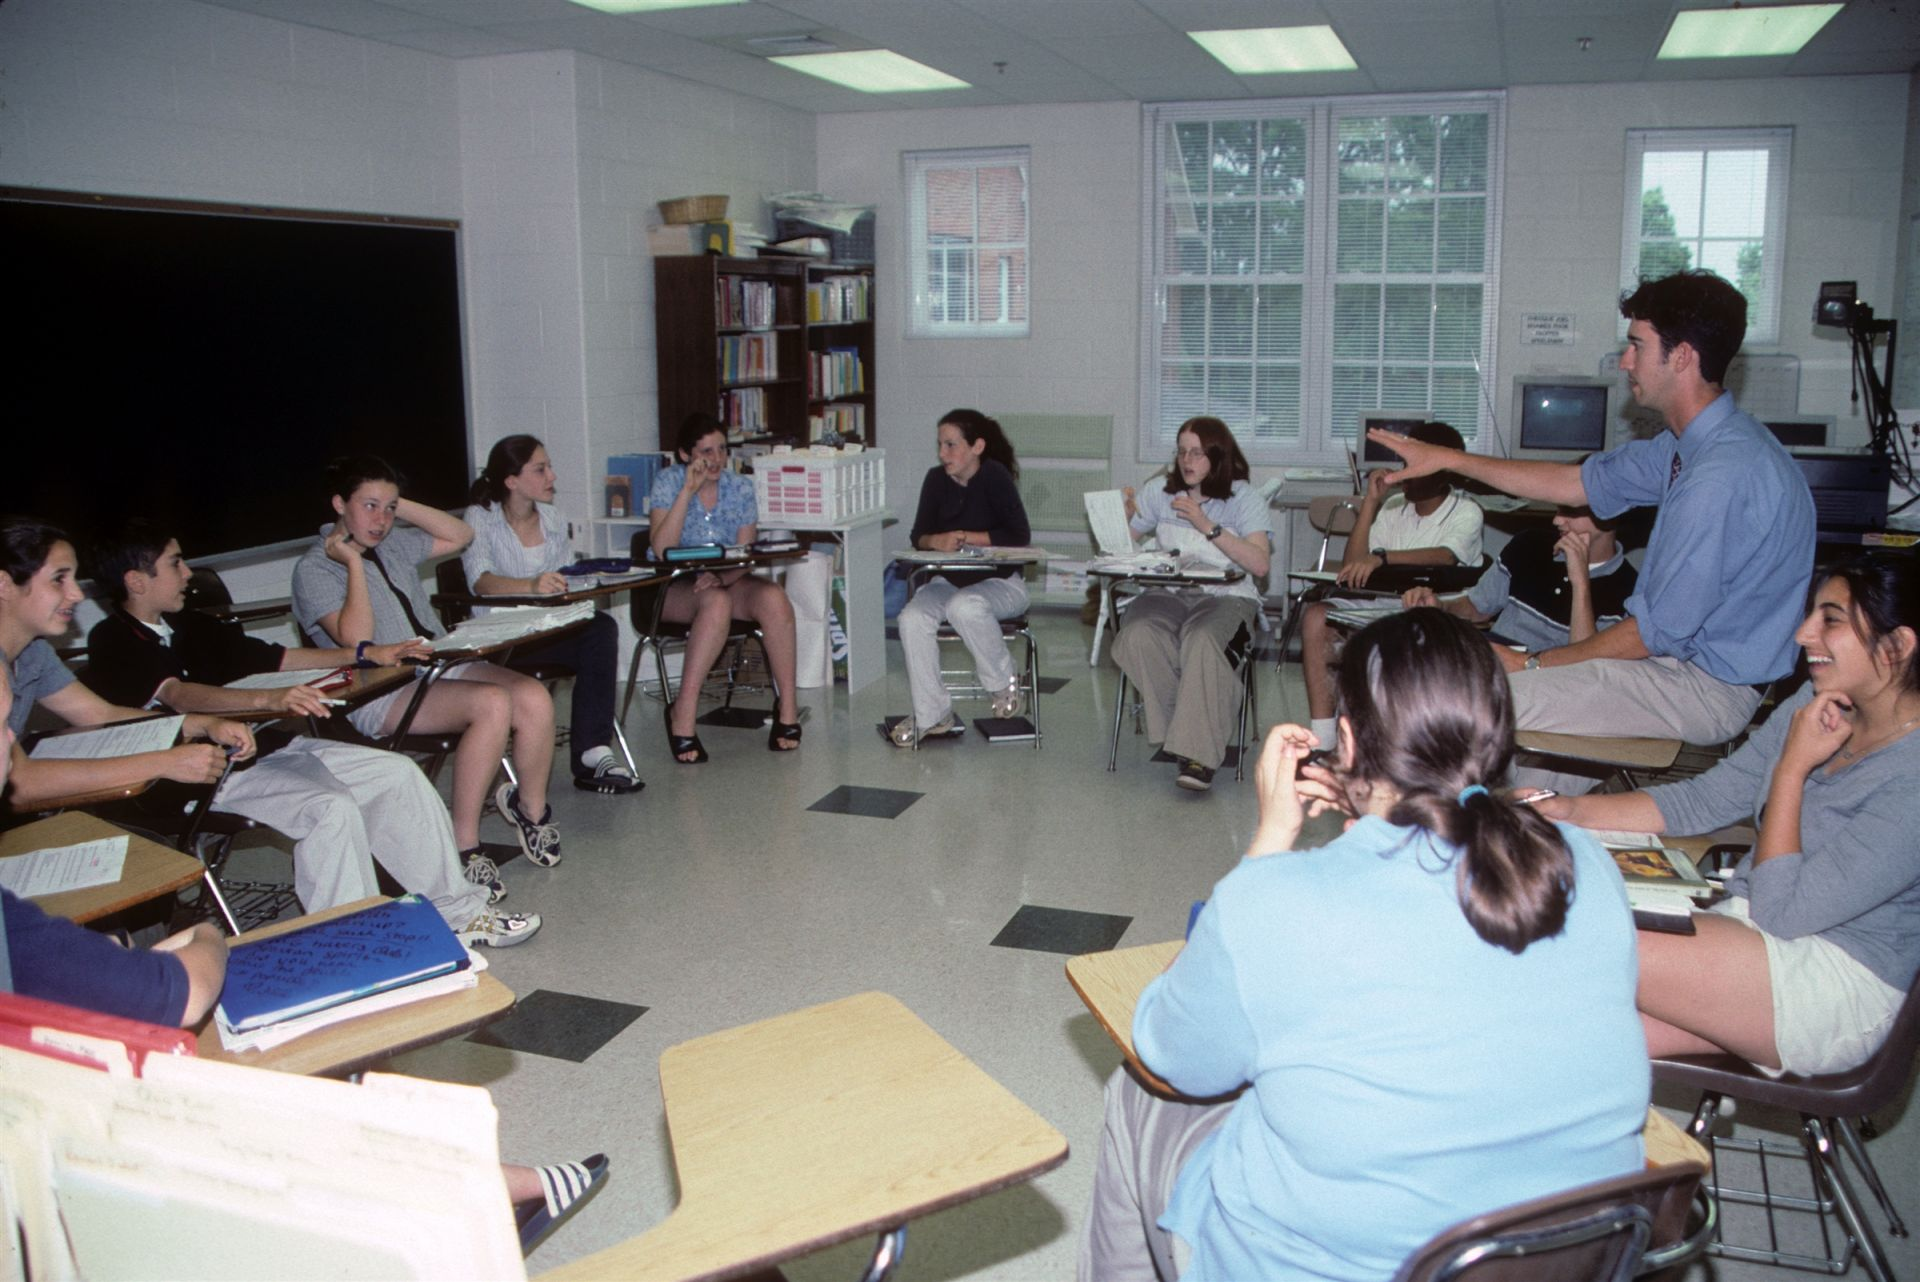 Teacher speaking with students in a group setting - St. Andrew's Episcopal School